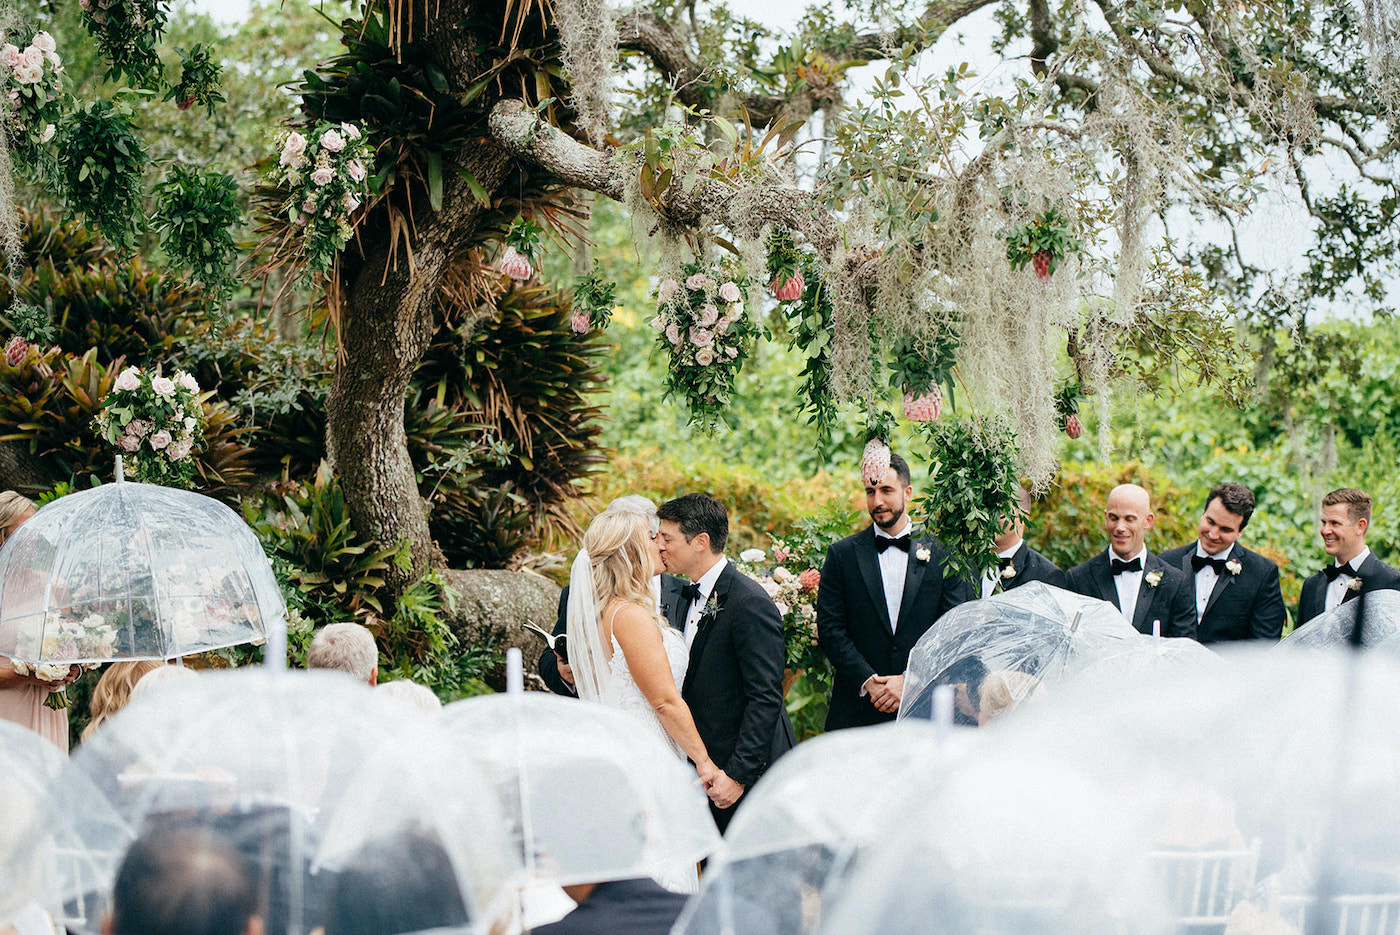 Romantic Florida Wedding Outside in Garden Inspired Ceremony Under Large Tree with Hanging Moss, Guests with Clear Umbrellas In the Rain   Sarasota Wedding Planner NK Weddings